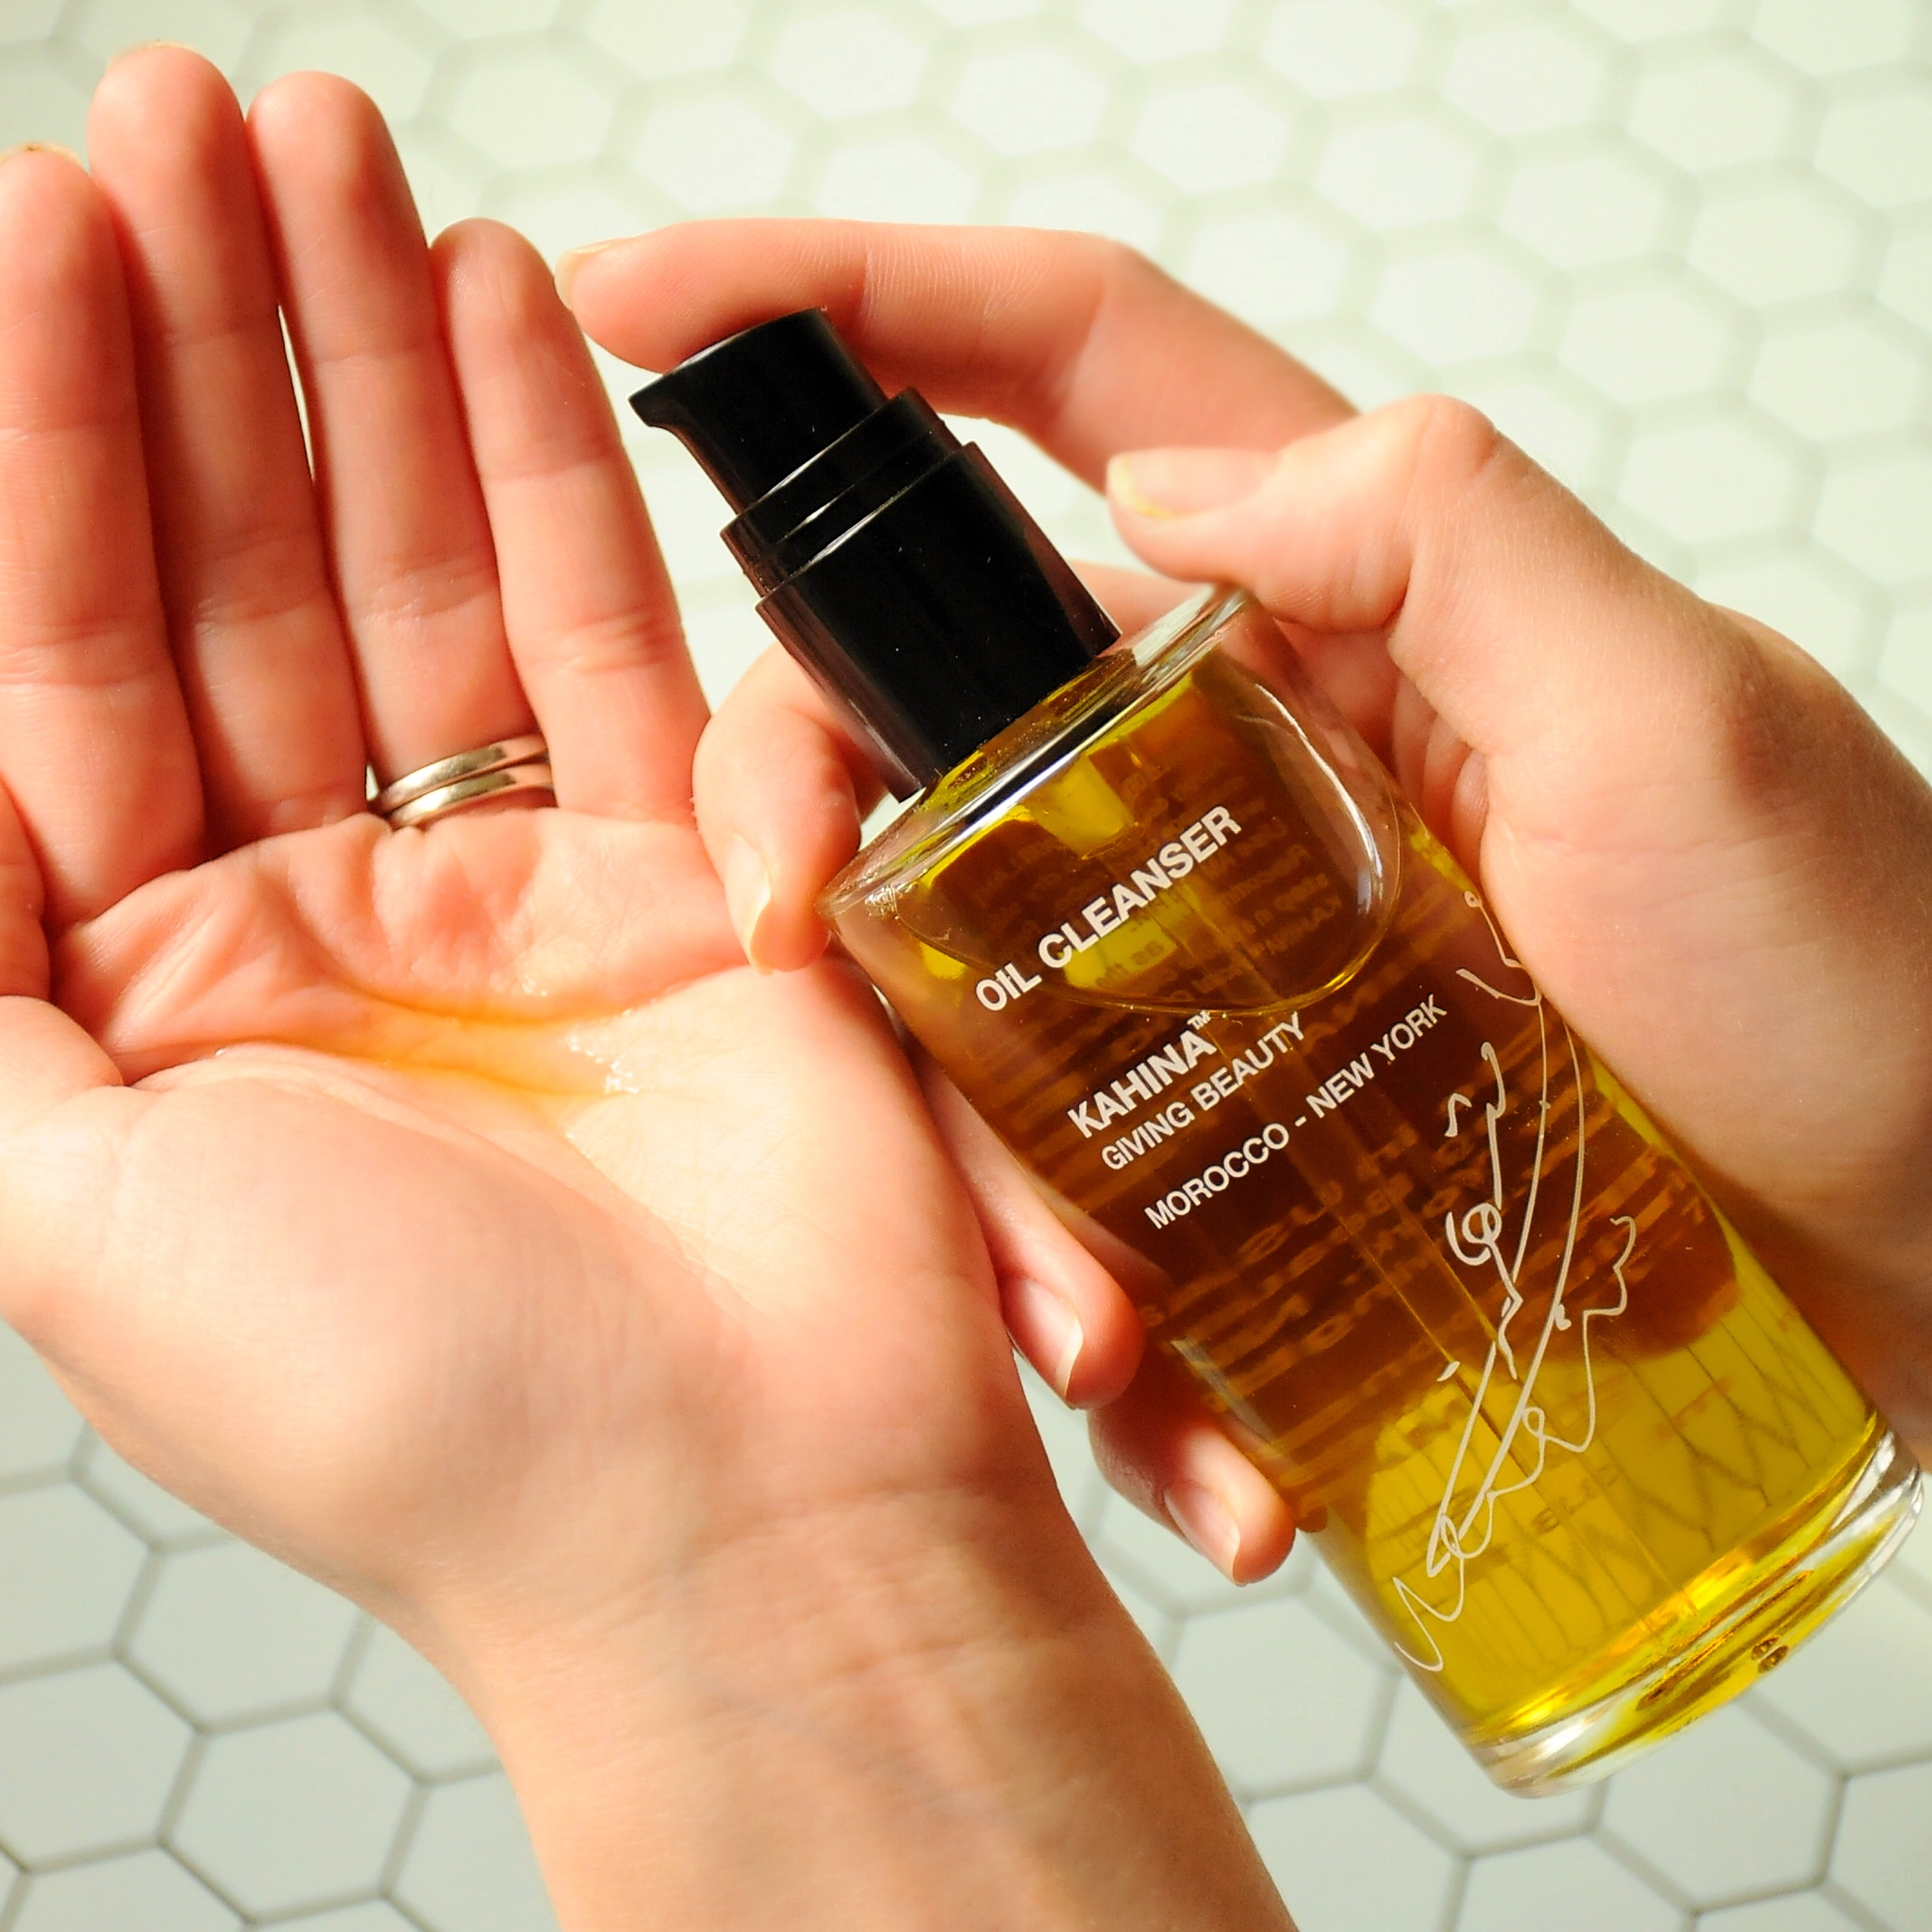 Kahina Giving Beauty Oil Cleanser Review